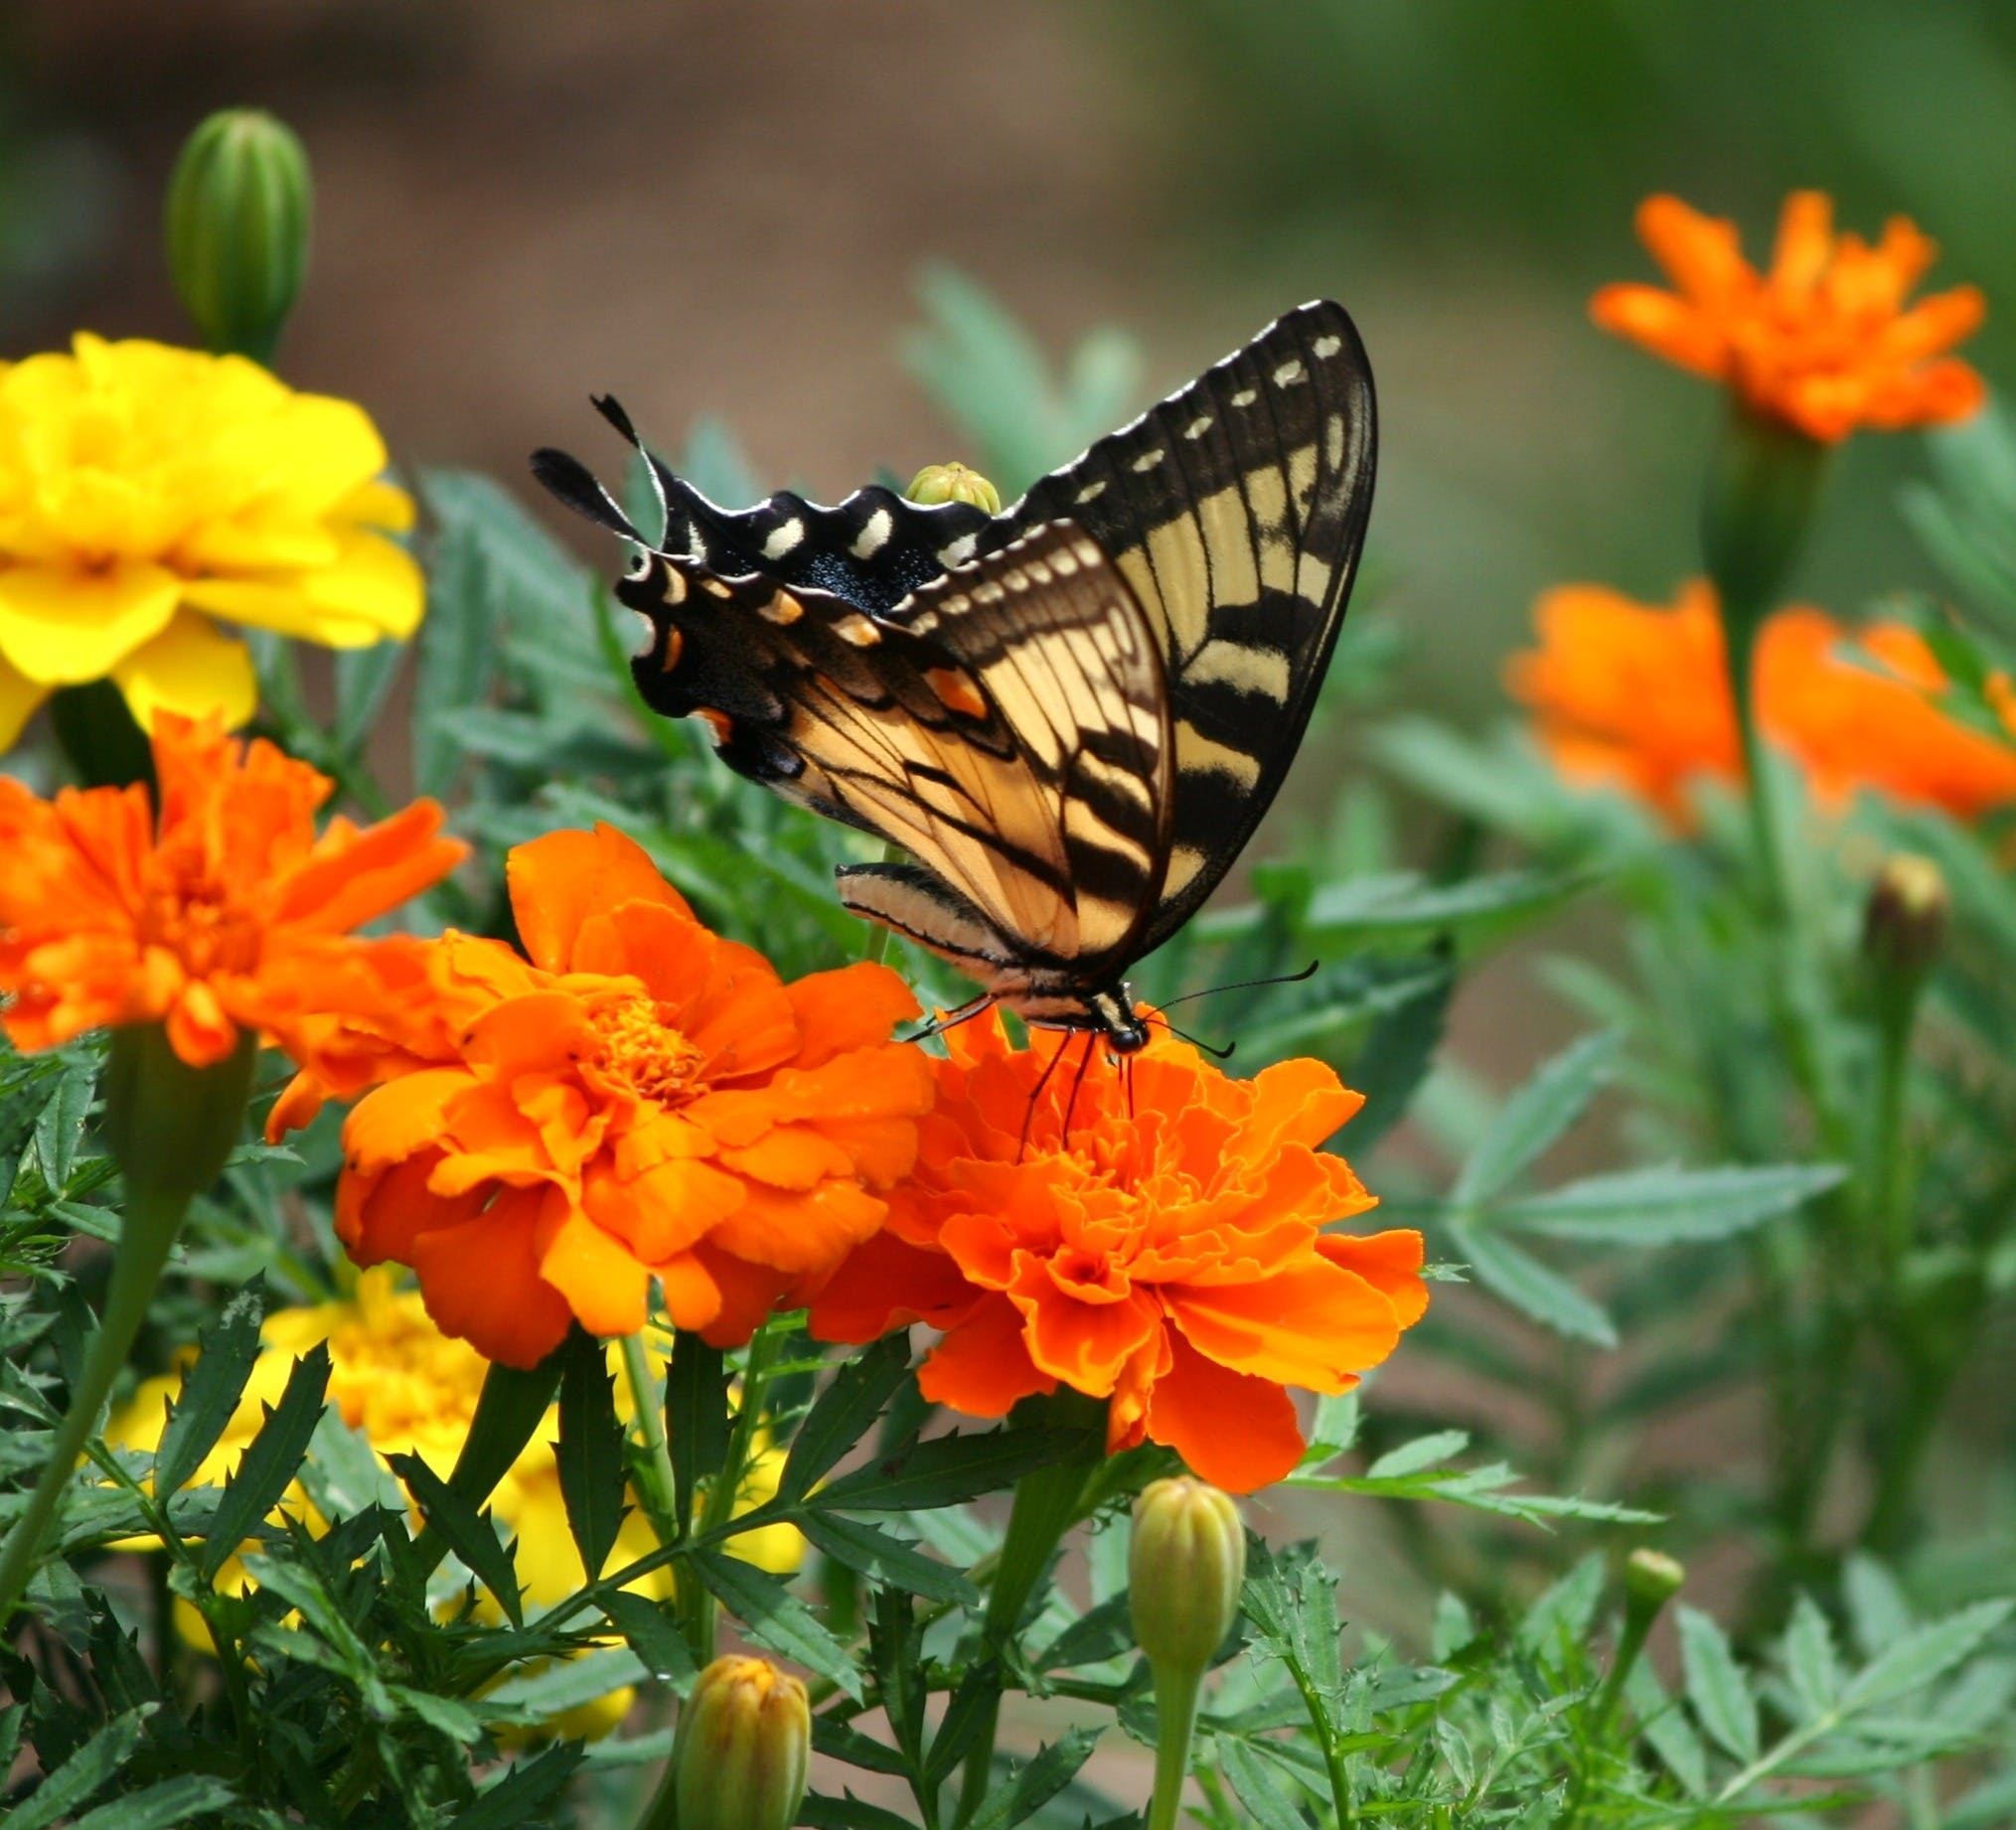 Black and Brown Butterfly on Top of Orange Flower